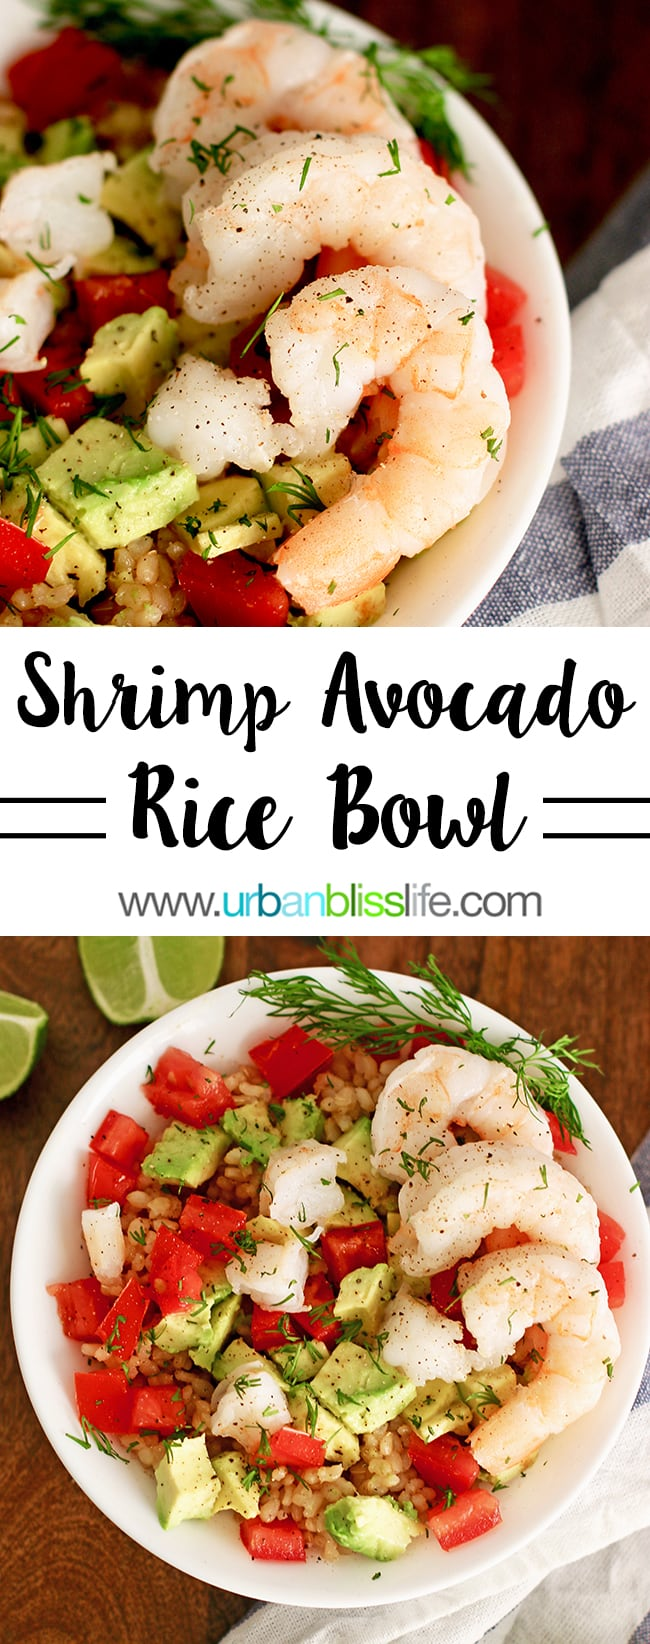 shrimp avocado rice bowl main image